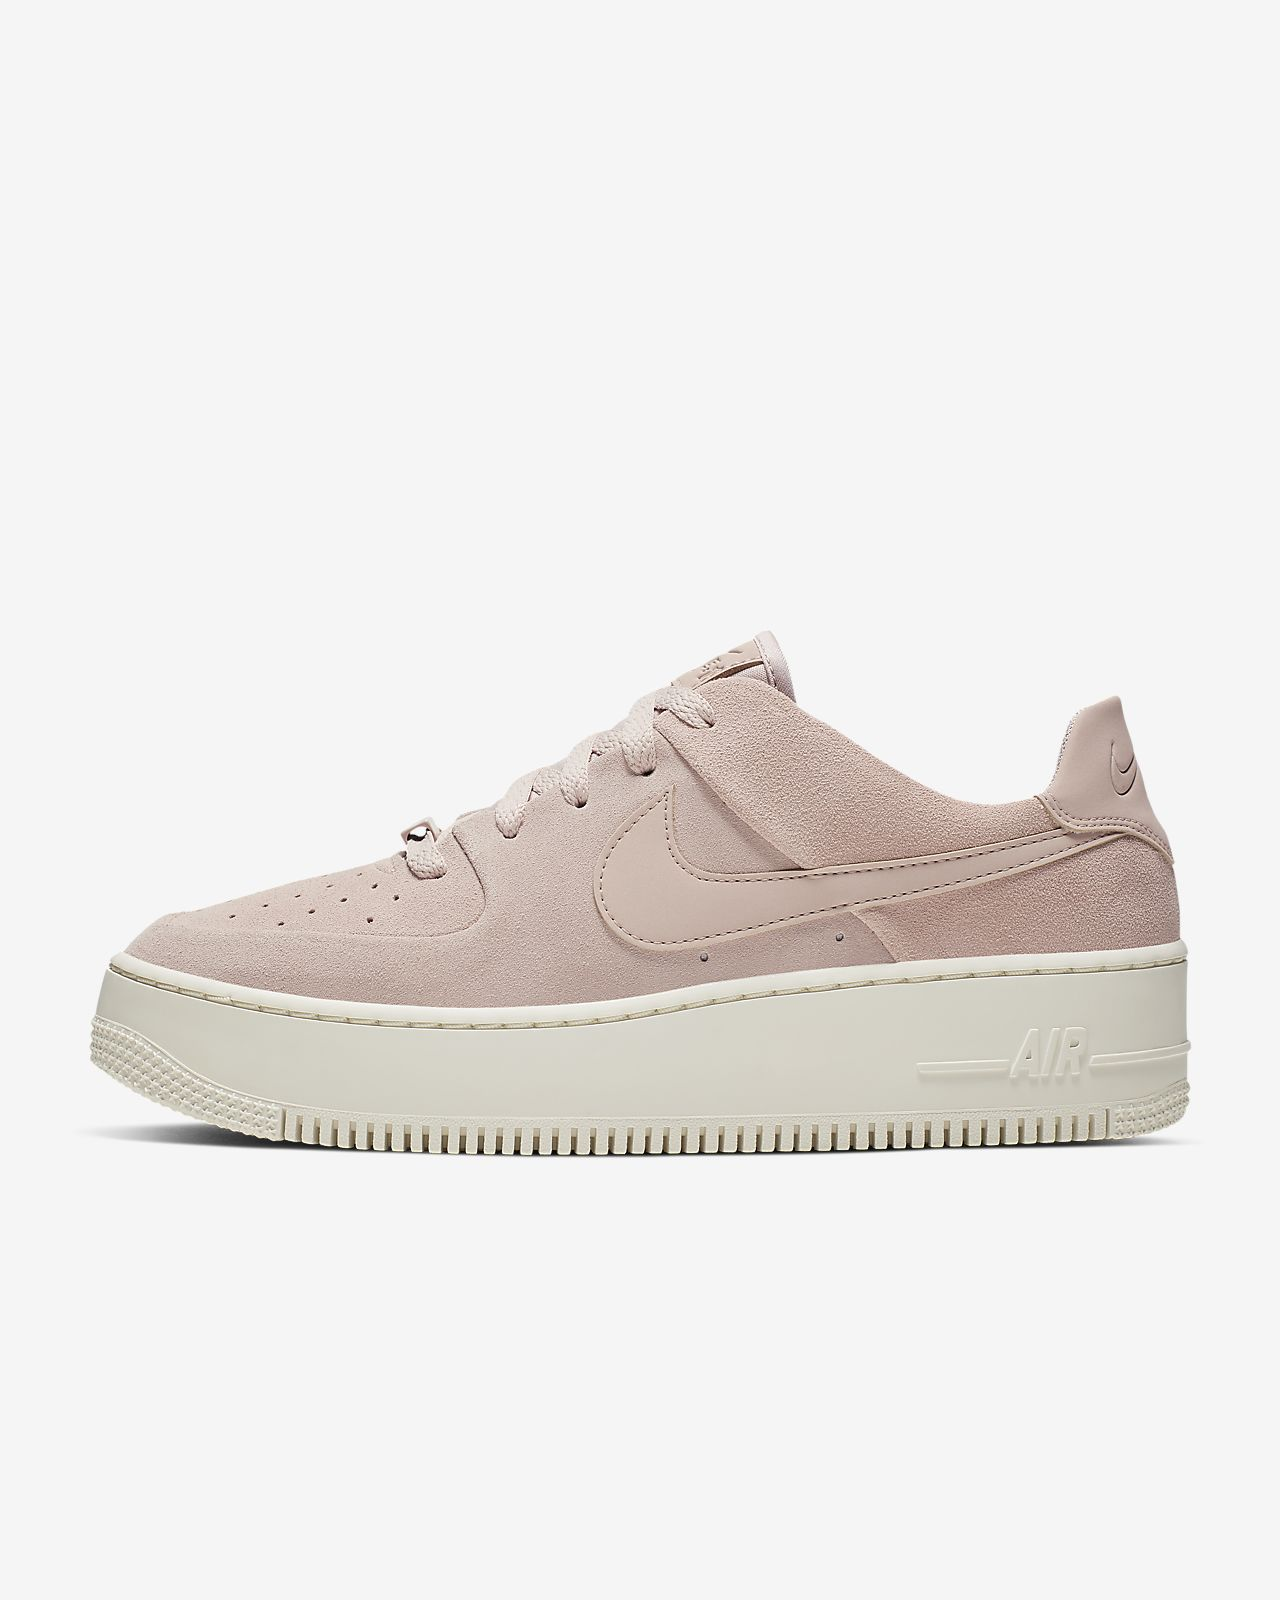 Nike Air Force 1 Sage Low Women s Shoe. Nike.com AU 4018d89965